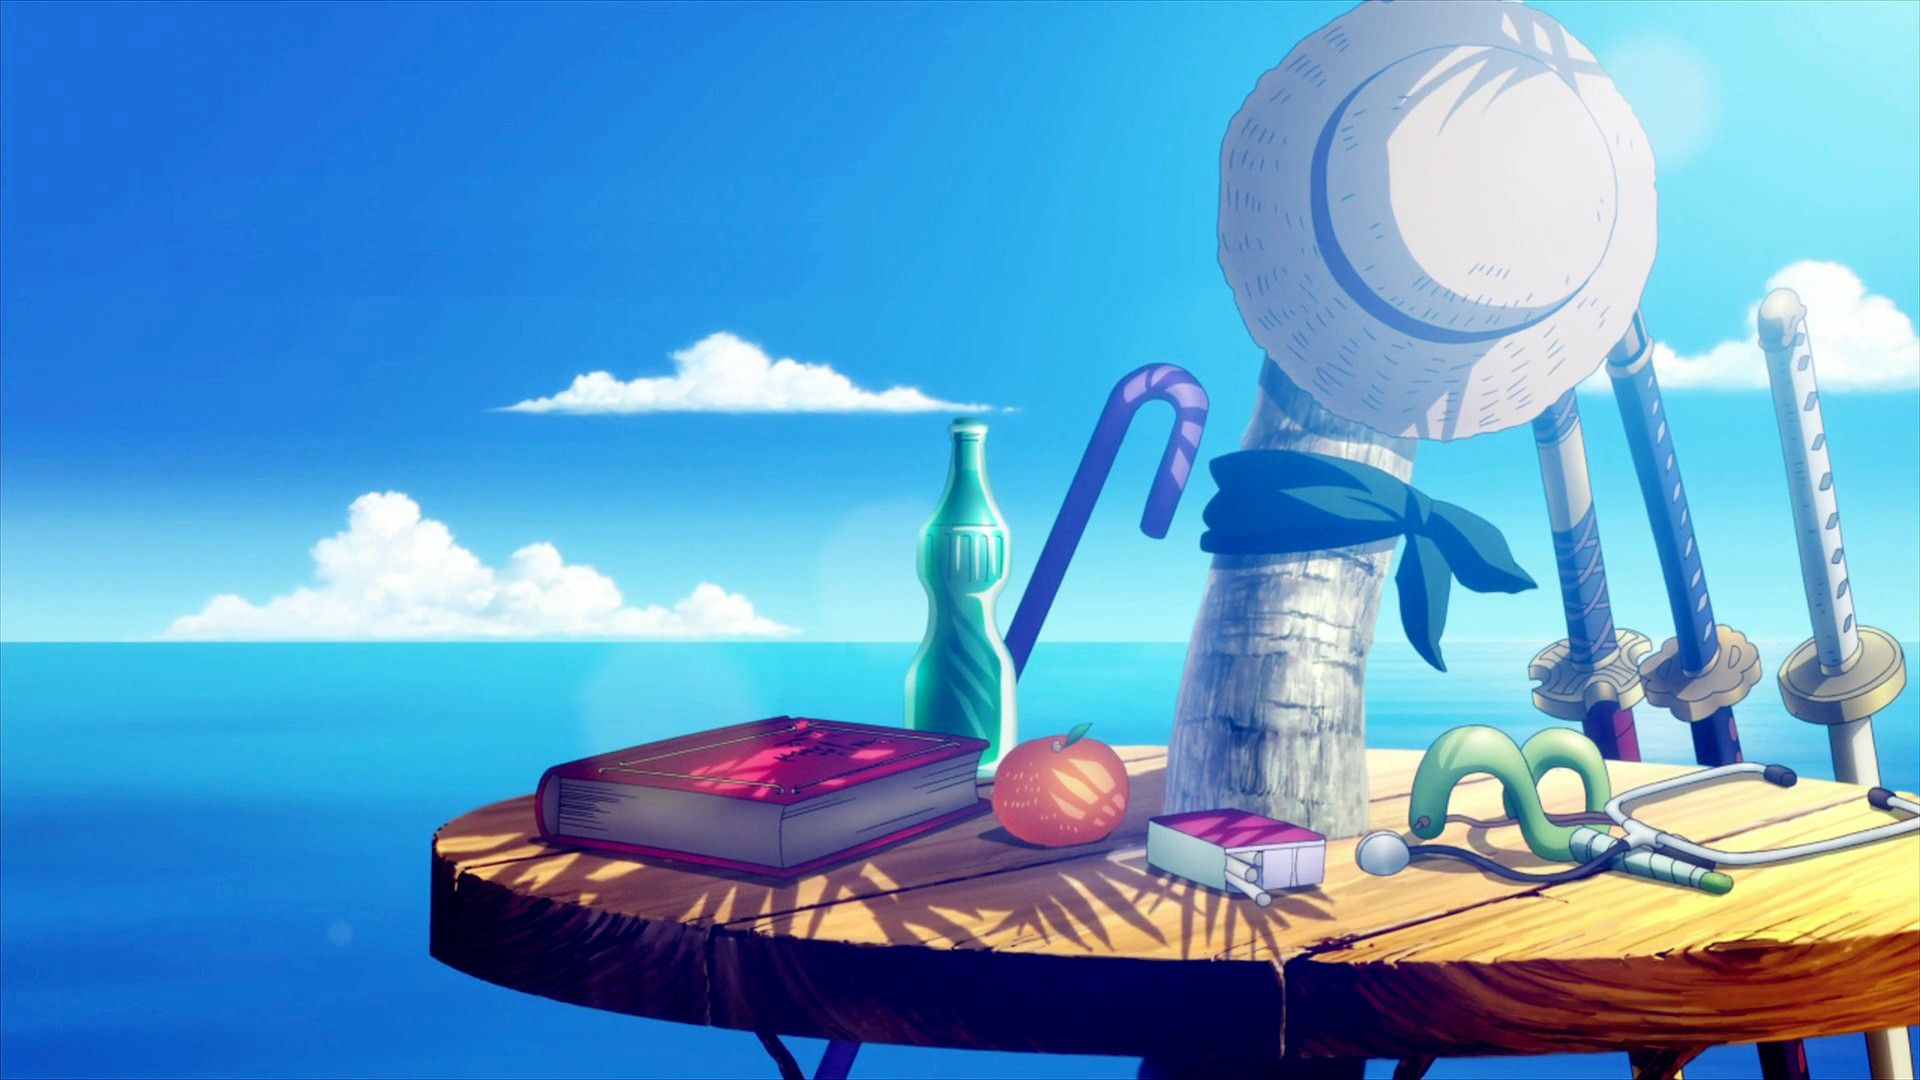 Strong World Wallpaper Credits Picture 1920x1080 One Piece